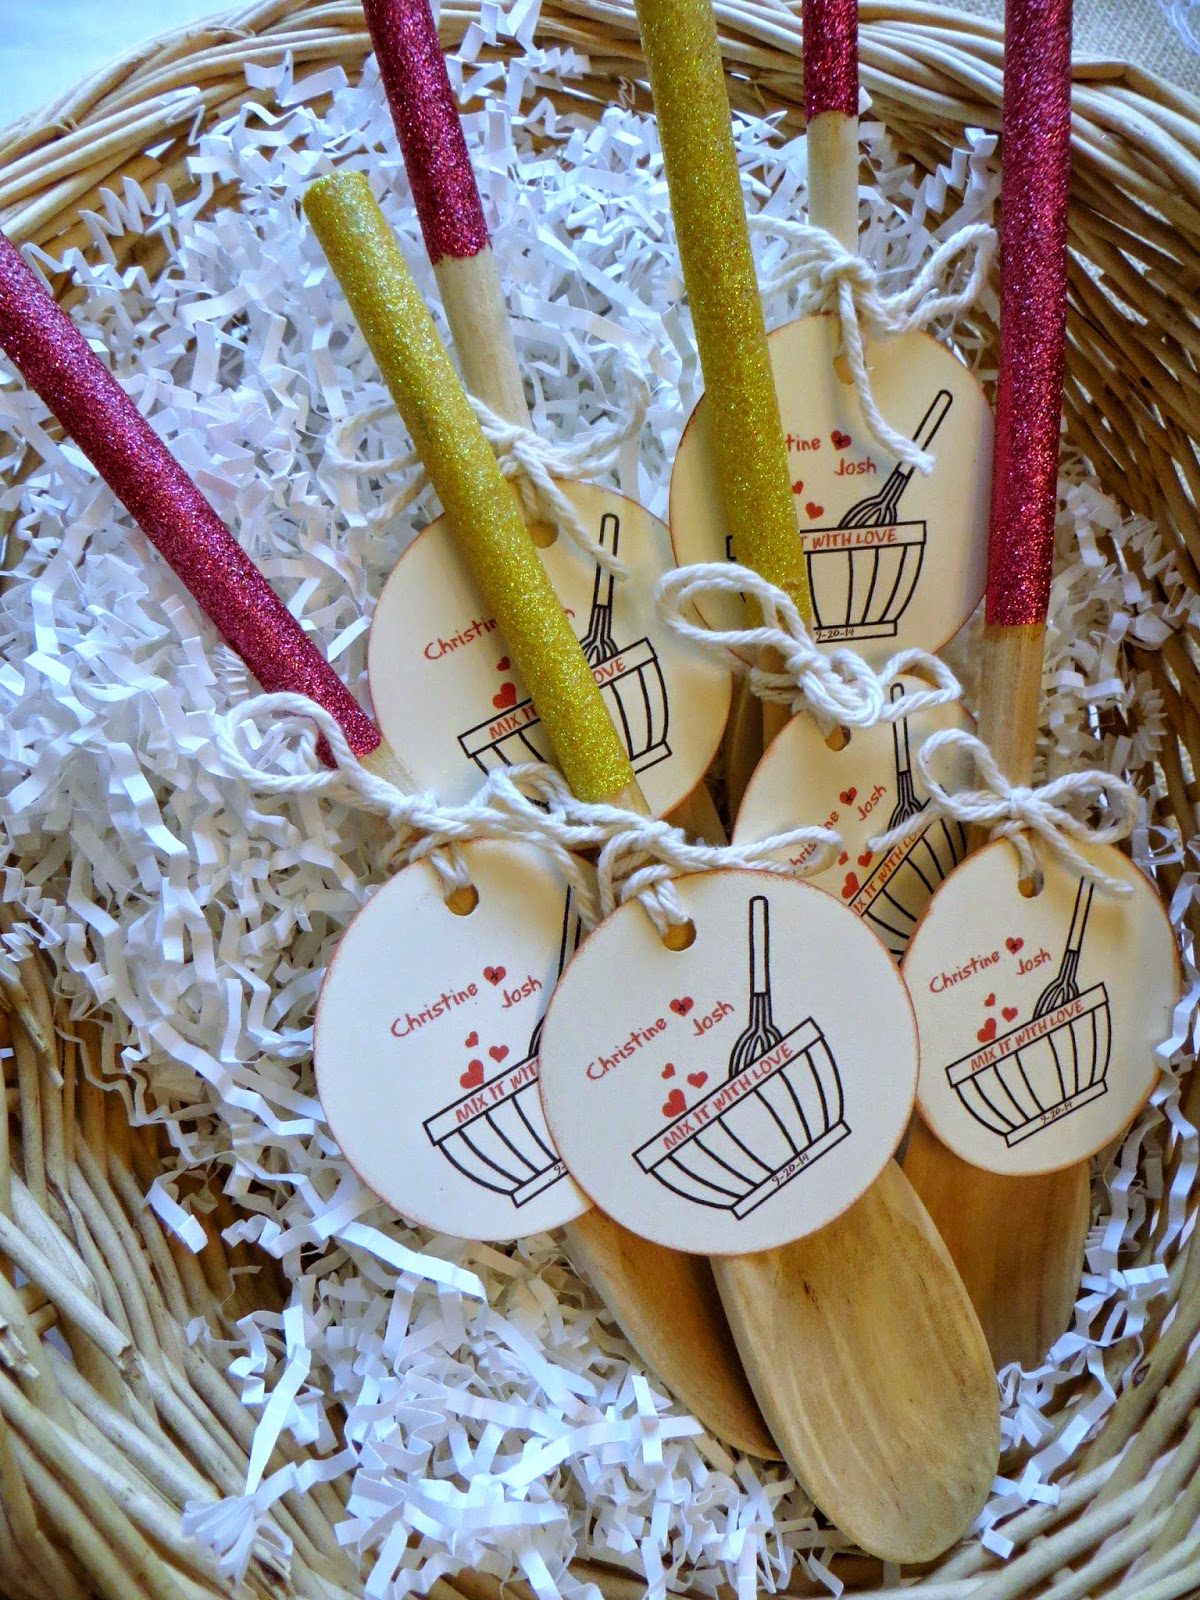 glittered spoon, bridal shower favors, diy bridal shower, weddding shower diy favors,